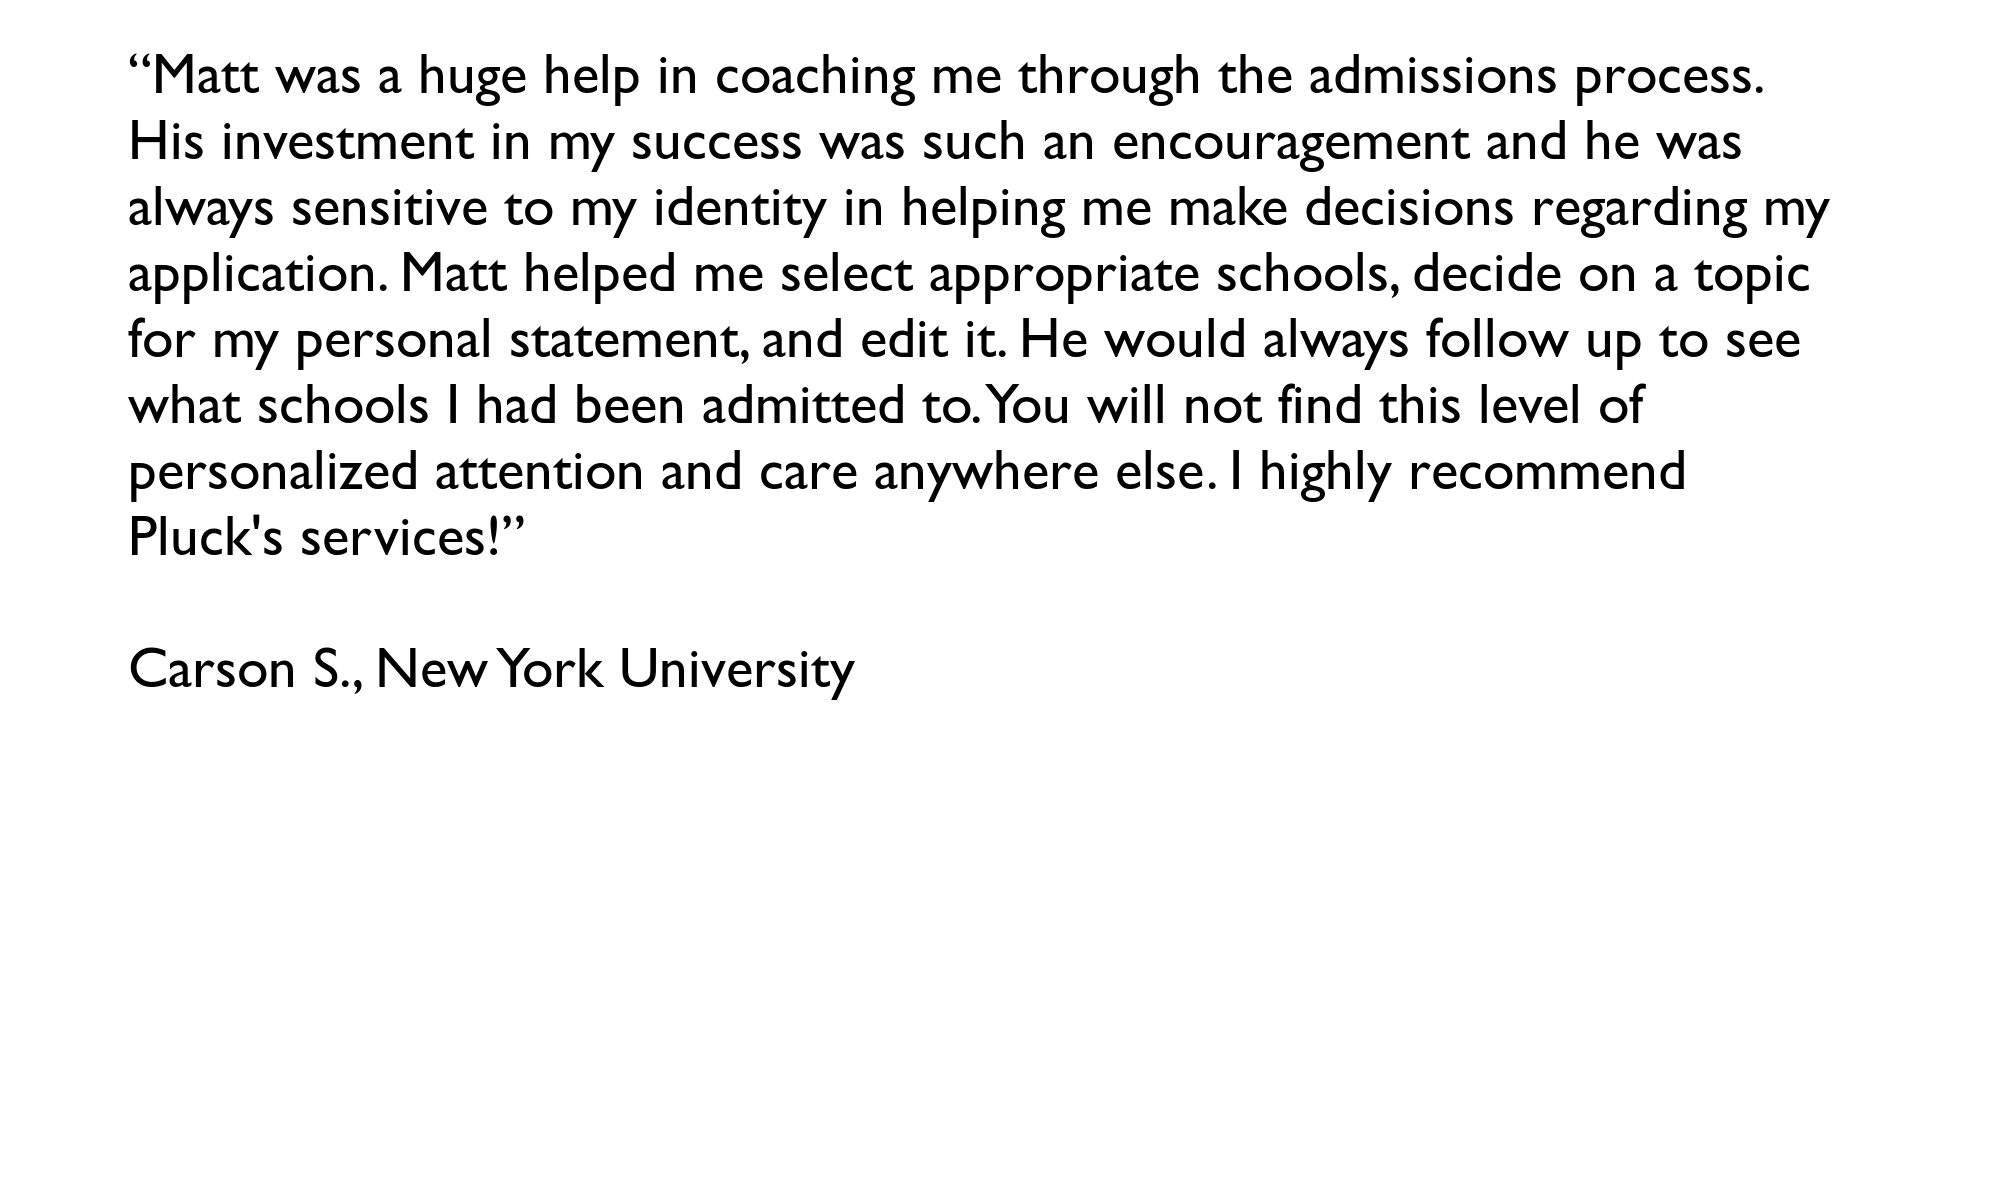 Carson S_Admissions.png